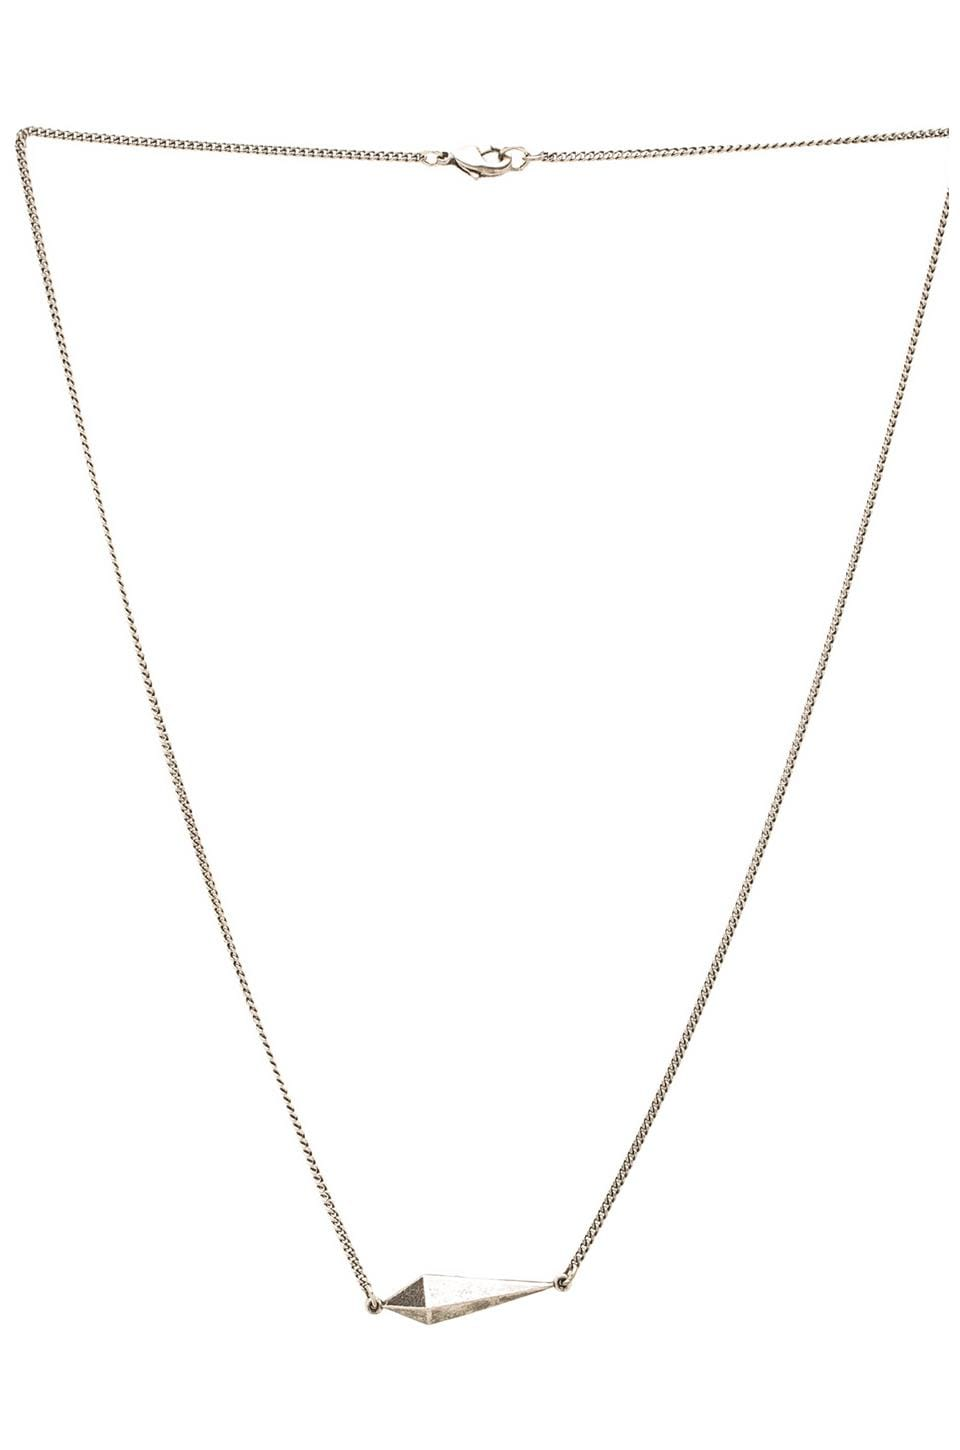 Luv AJ The Tilted Spike Charm Necklace in Antique Nickel